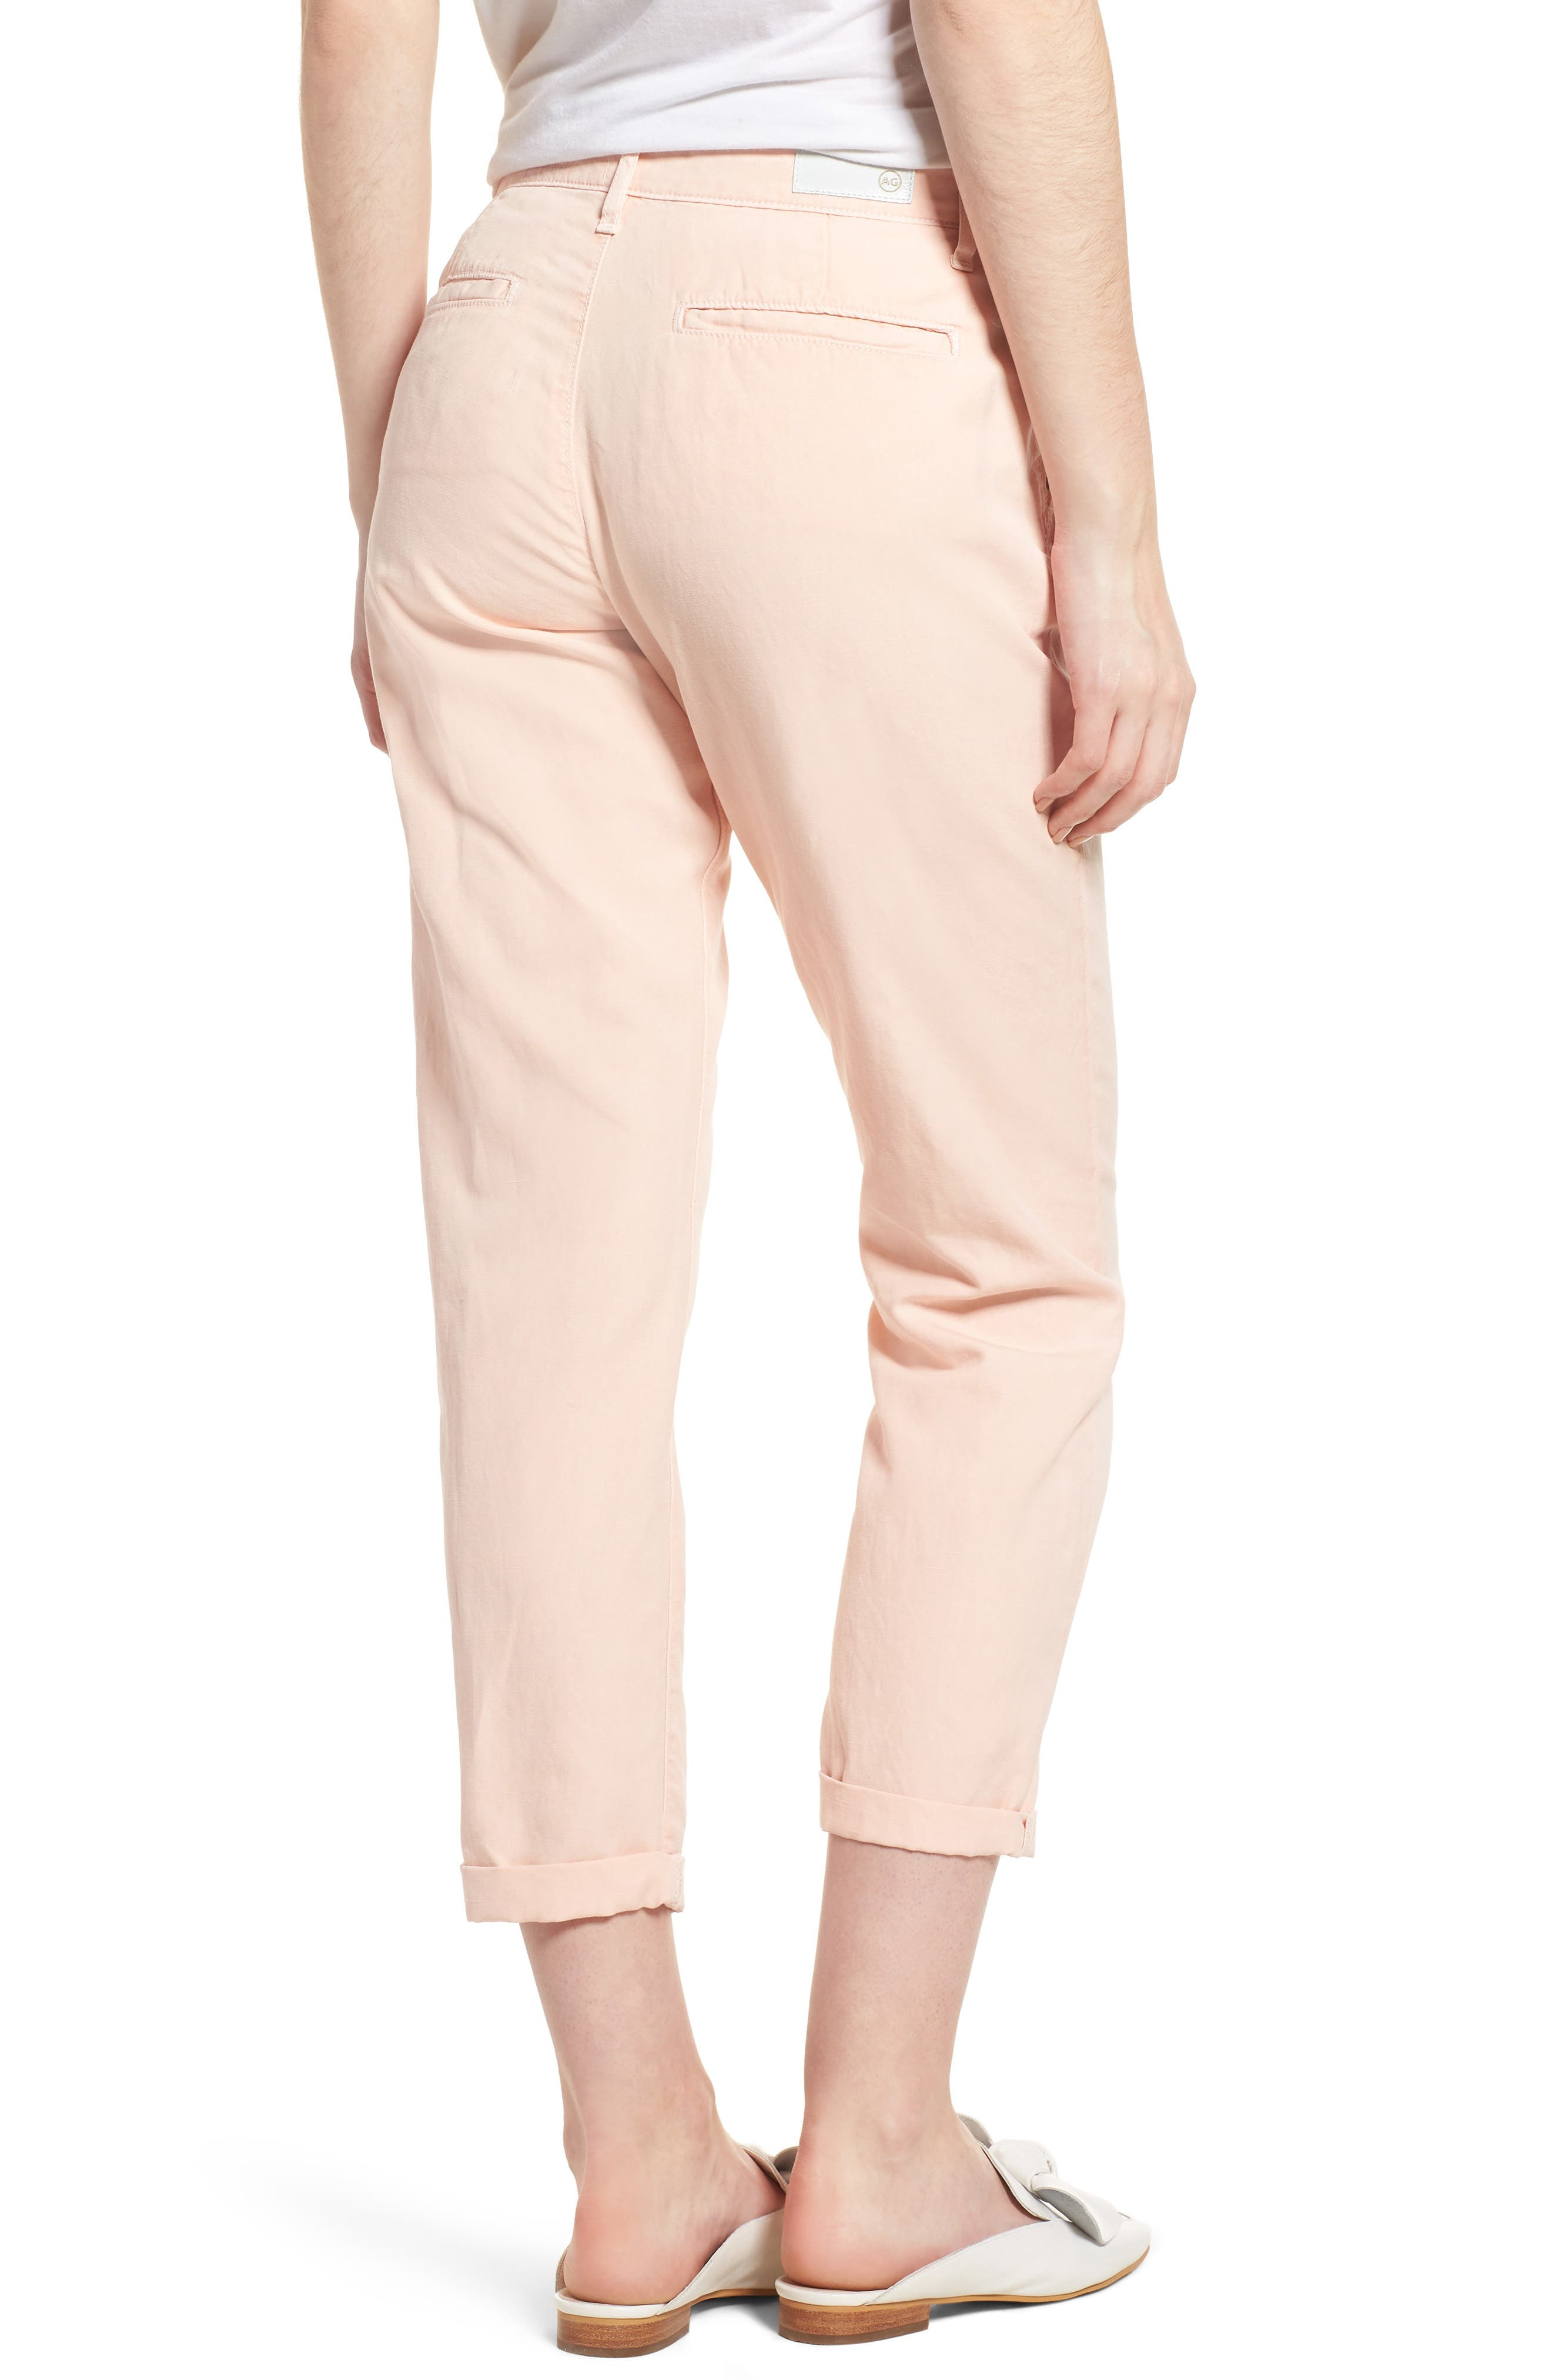 Caden Crop Twill Trousers,                             Alternate thumbnail 2, color,                             Sulfur Prism Pink